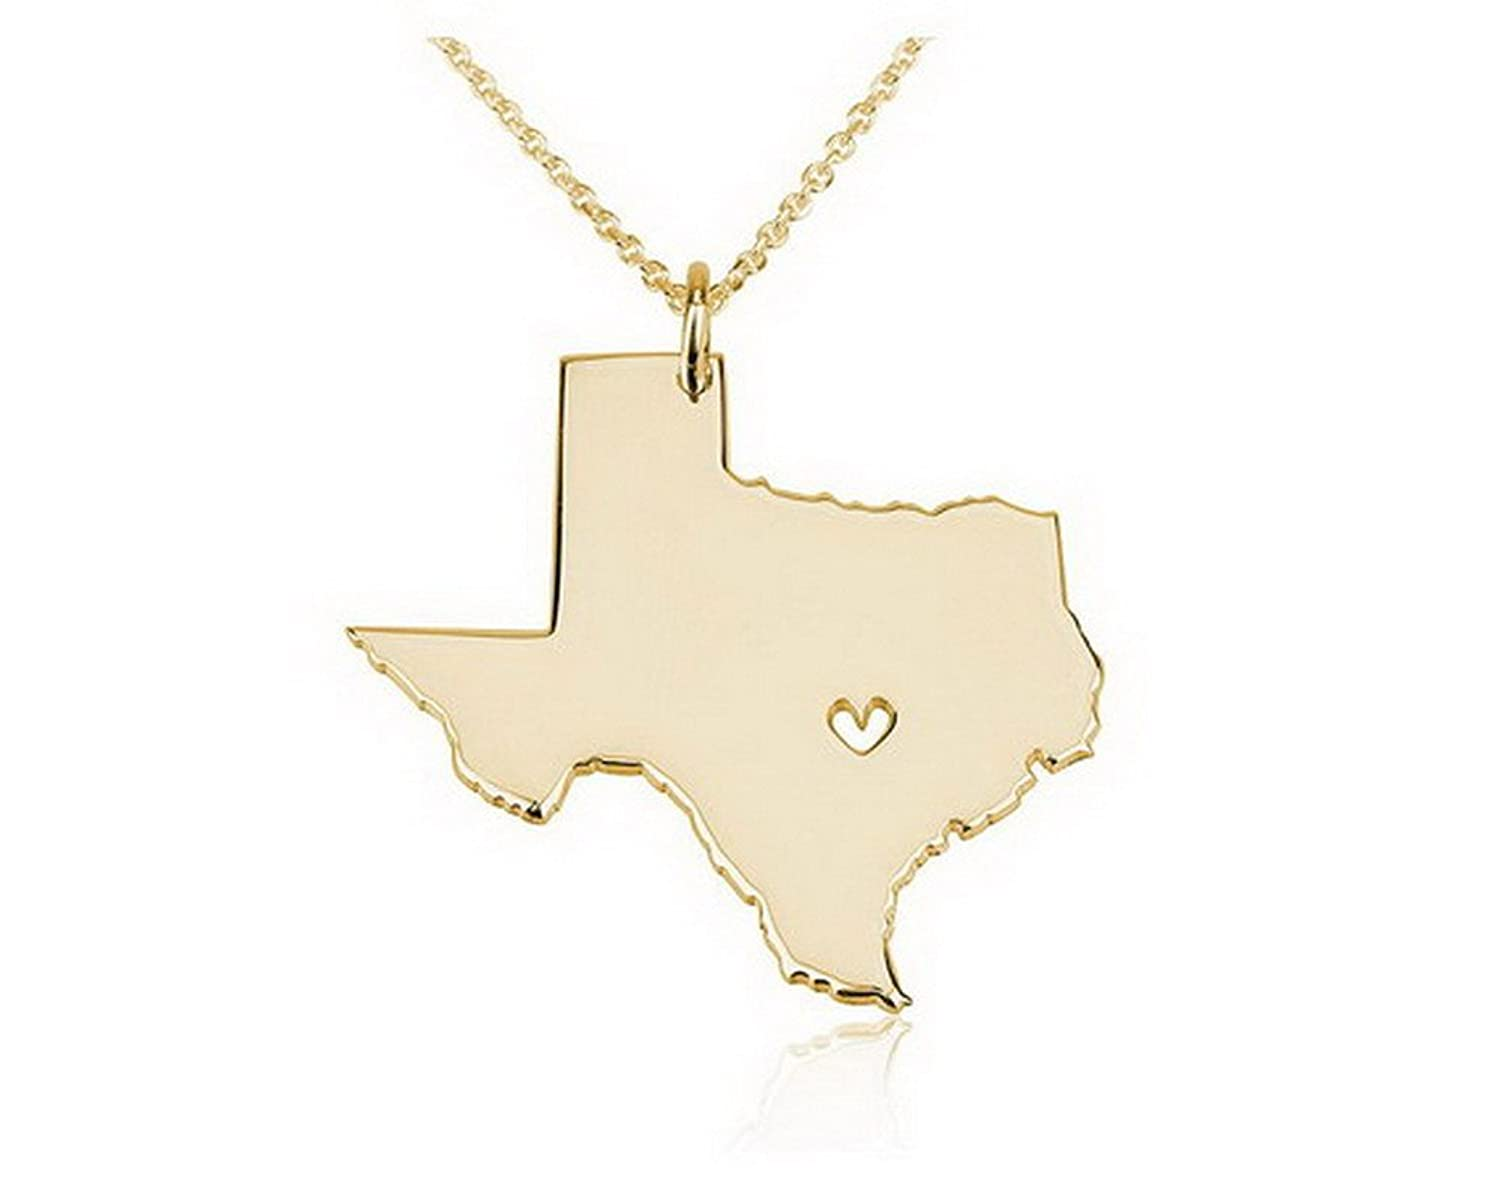 Amazon state necklace texas state charm necklace 18k gold amazon state necklace texas state charm necklace 18k gold plated state necklace with a heart 14 inches jewelry mozeypictures Images